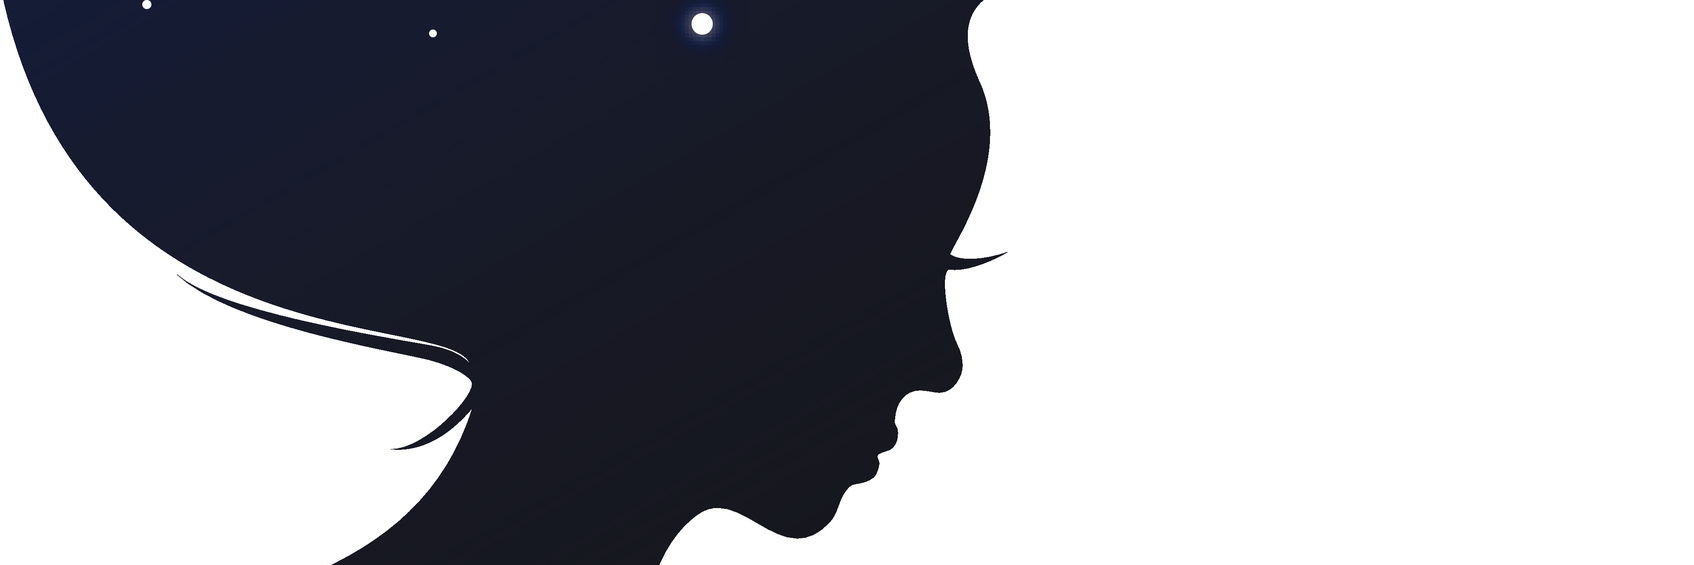 Isolated woman head with long hear looks like evening sky